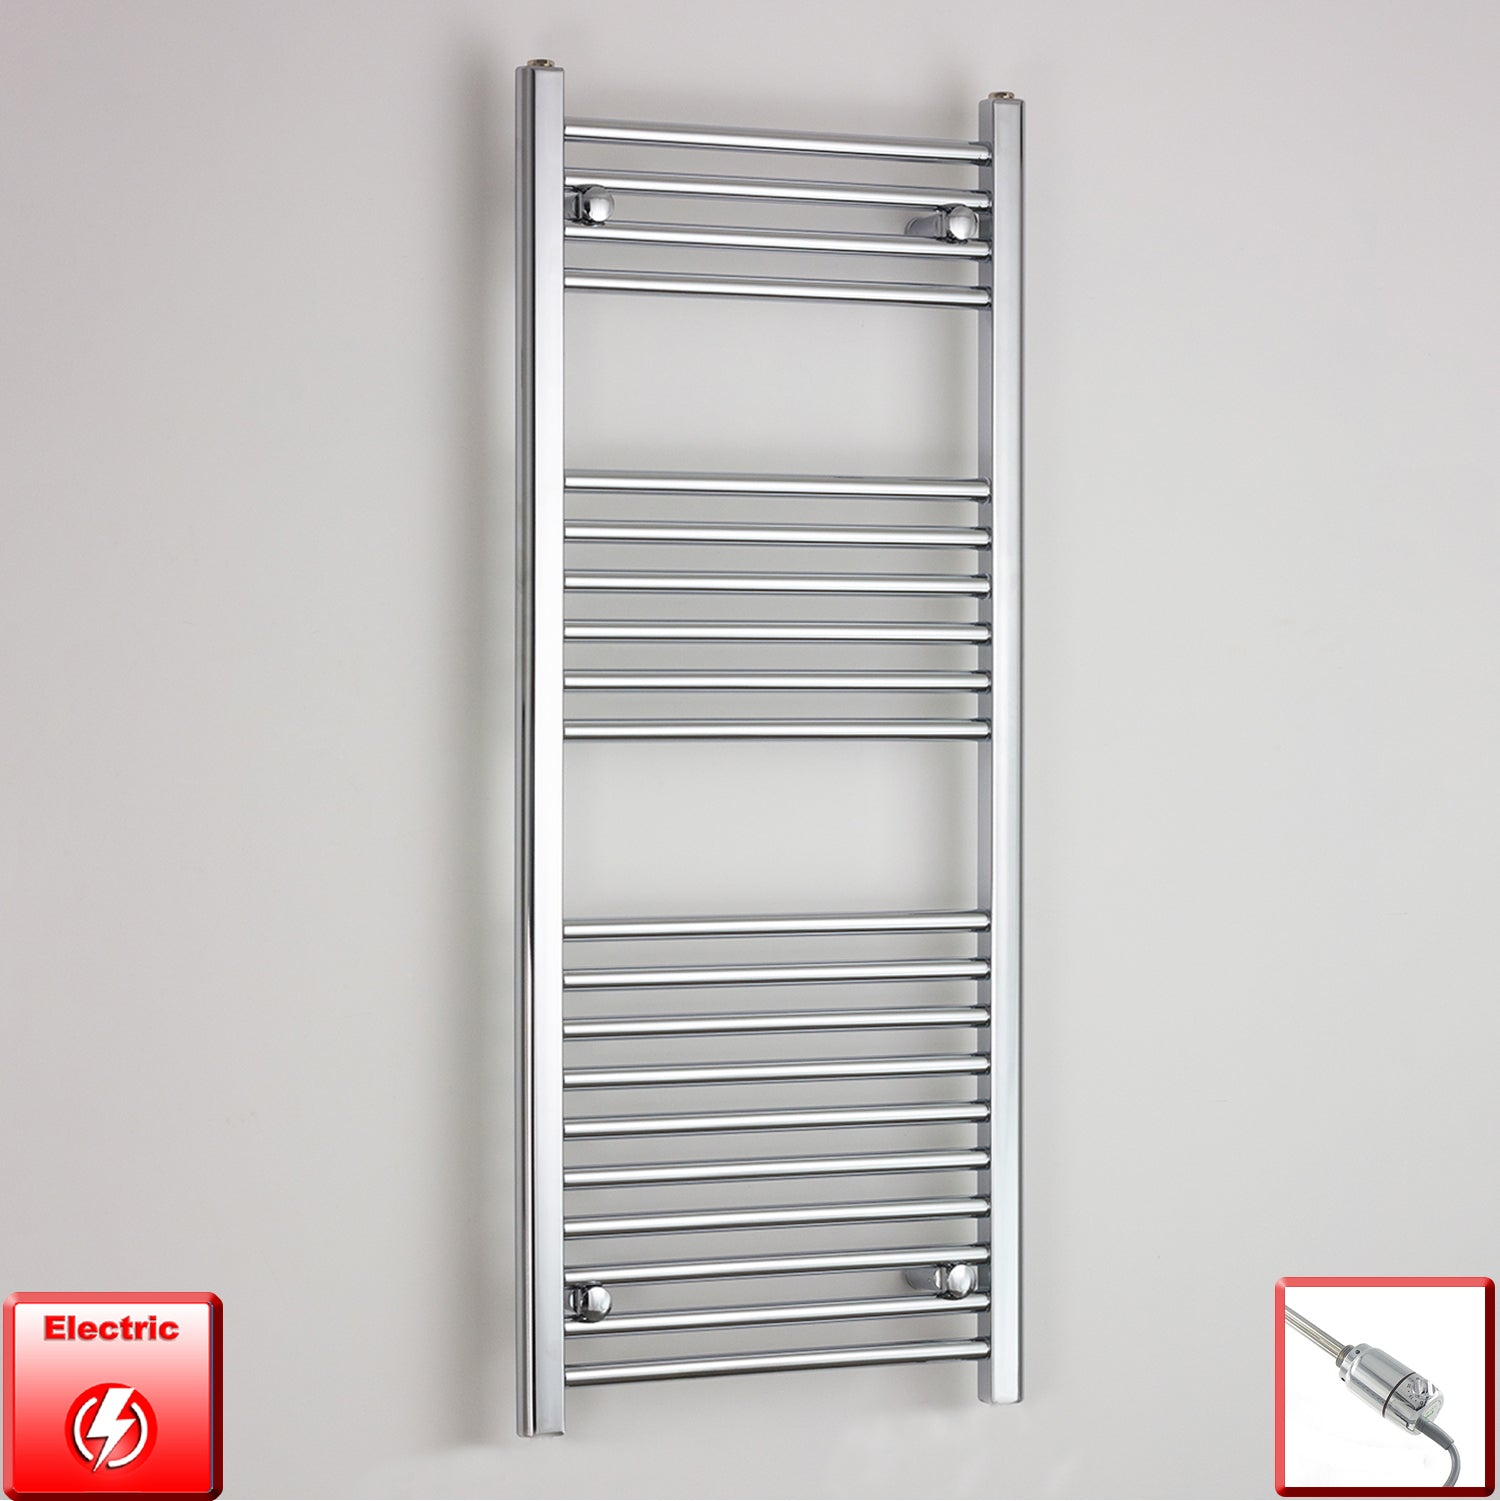 400mm Wide 1200mm High Pre-Filled Chrome Electric Towel Rail Radiator With Thermostatic GT Element